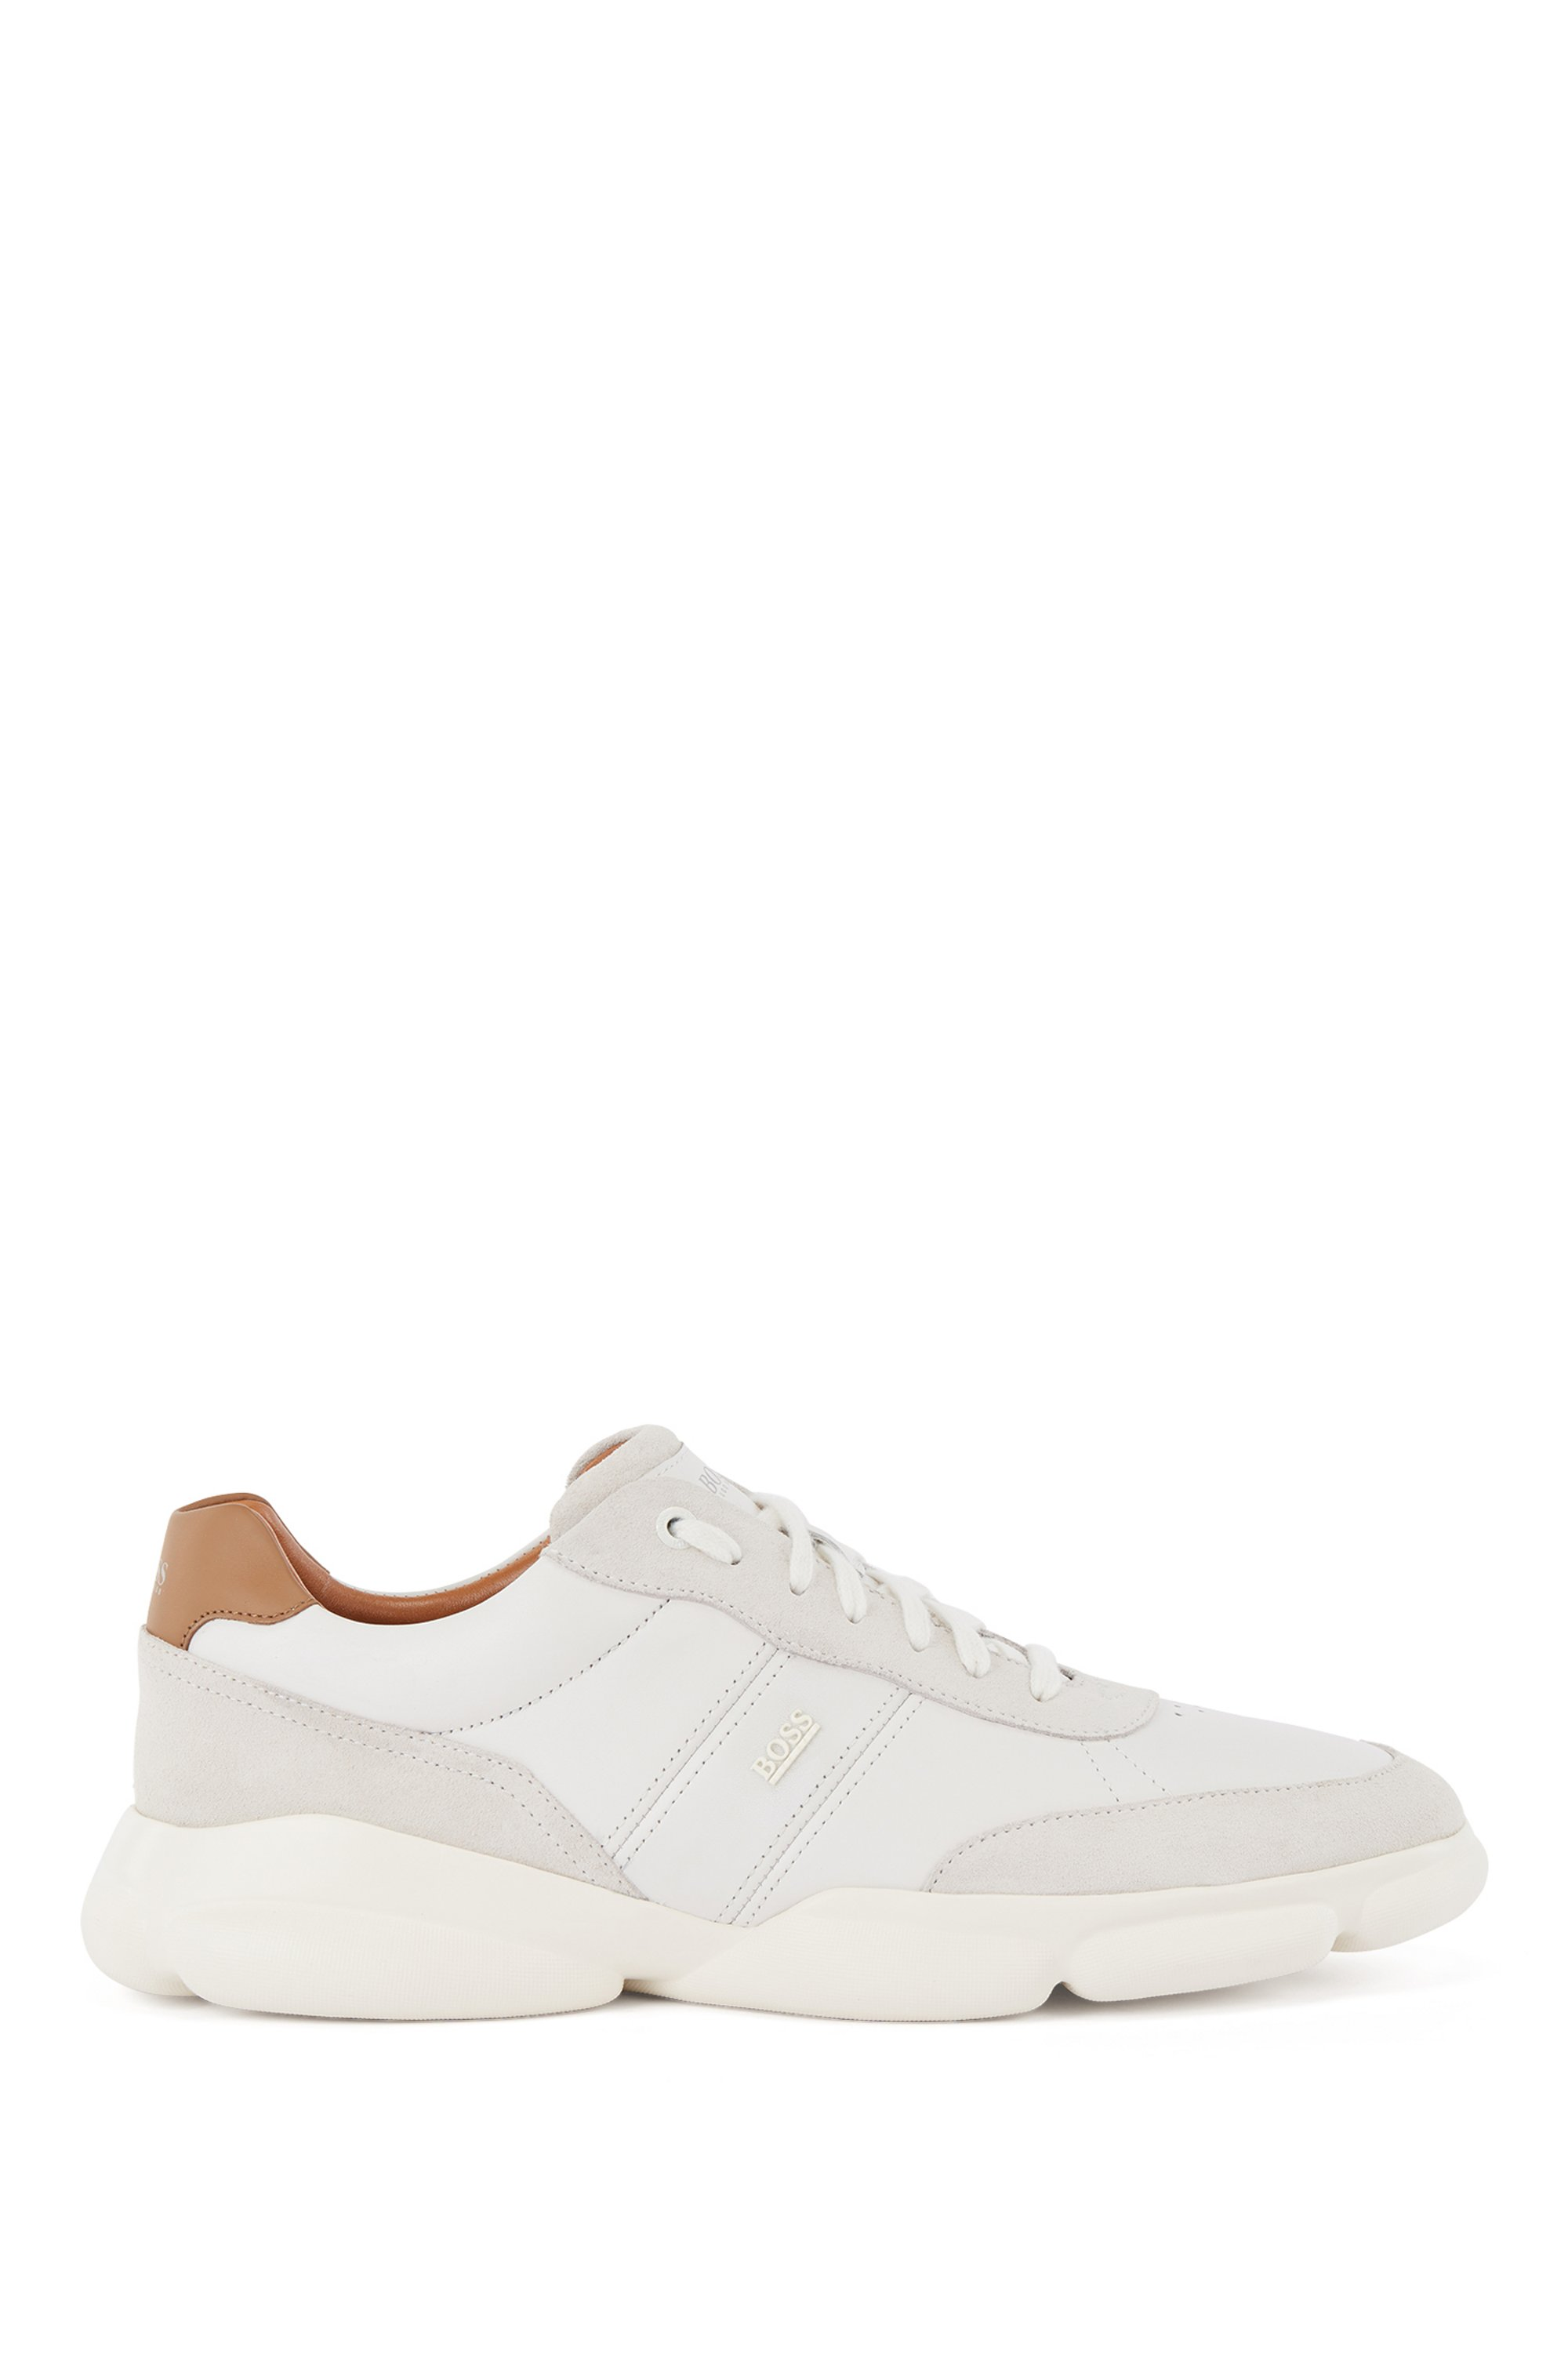 Running-inspired trainers in nappa leather and suede, White